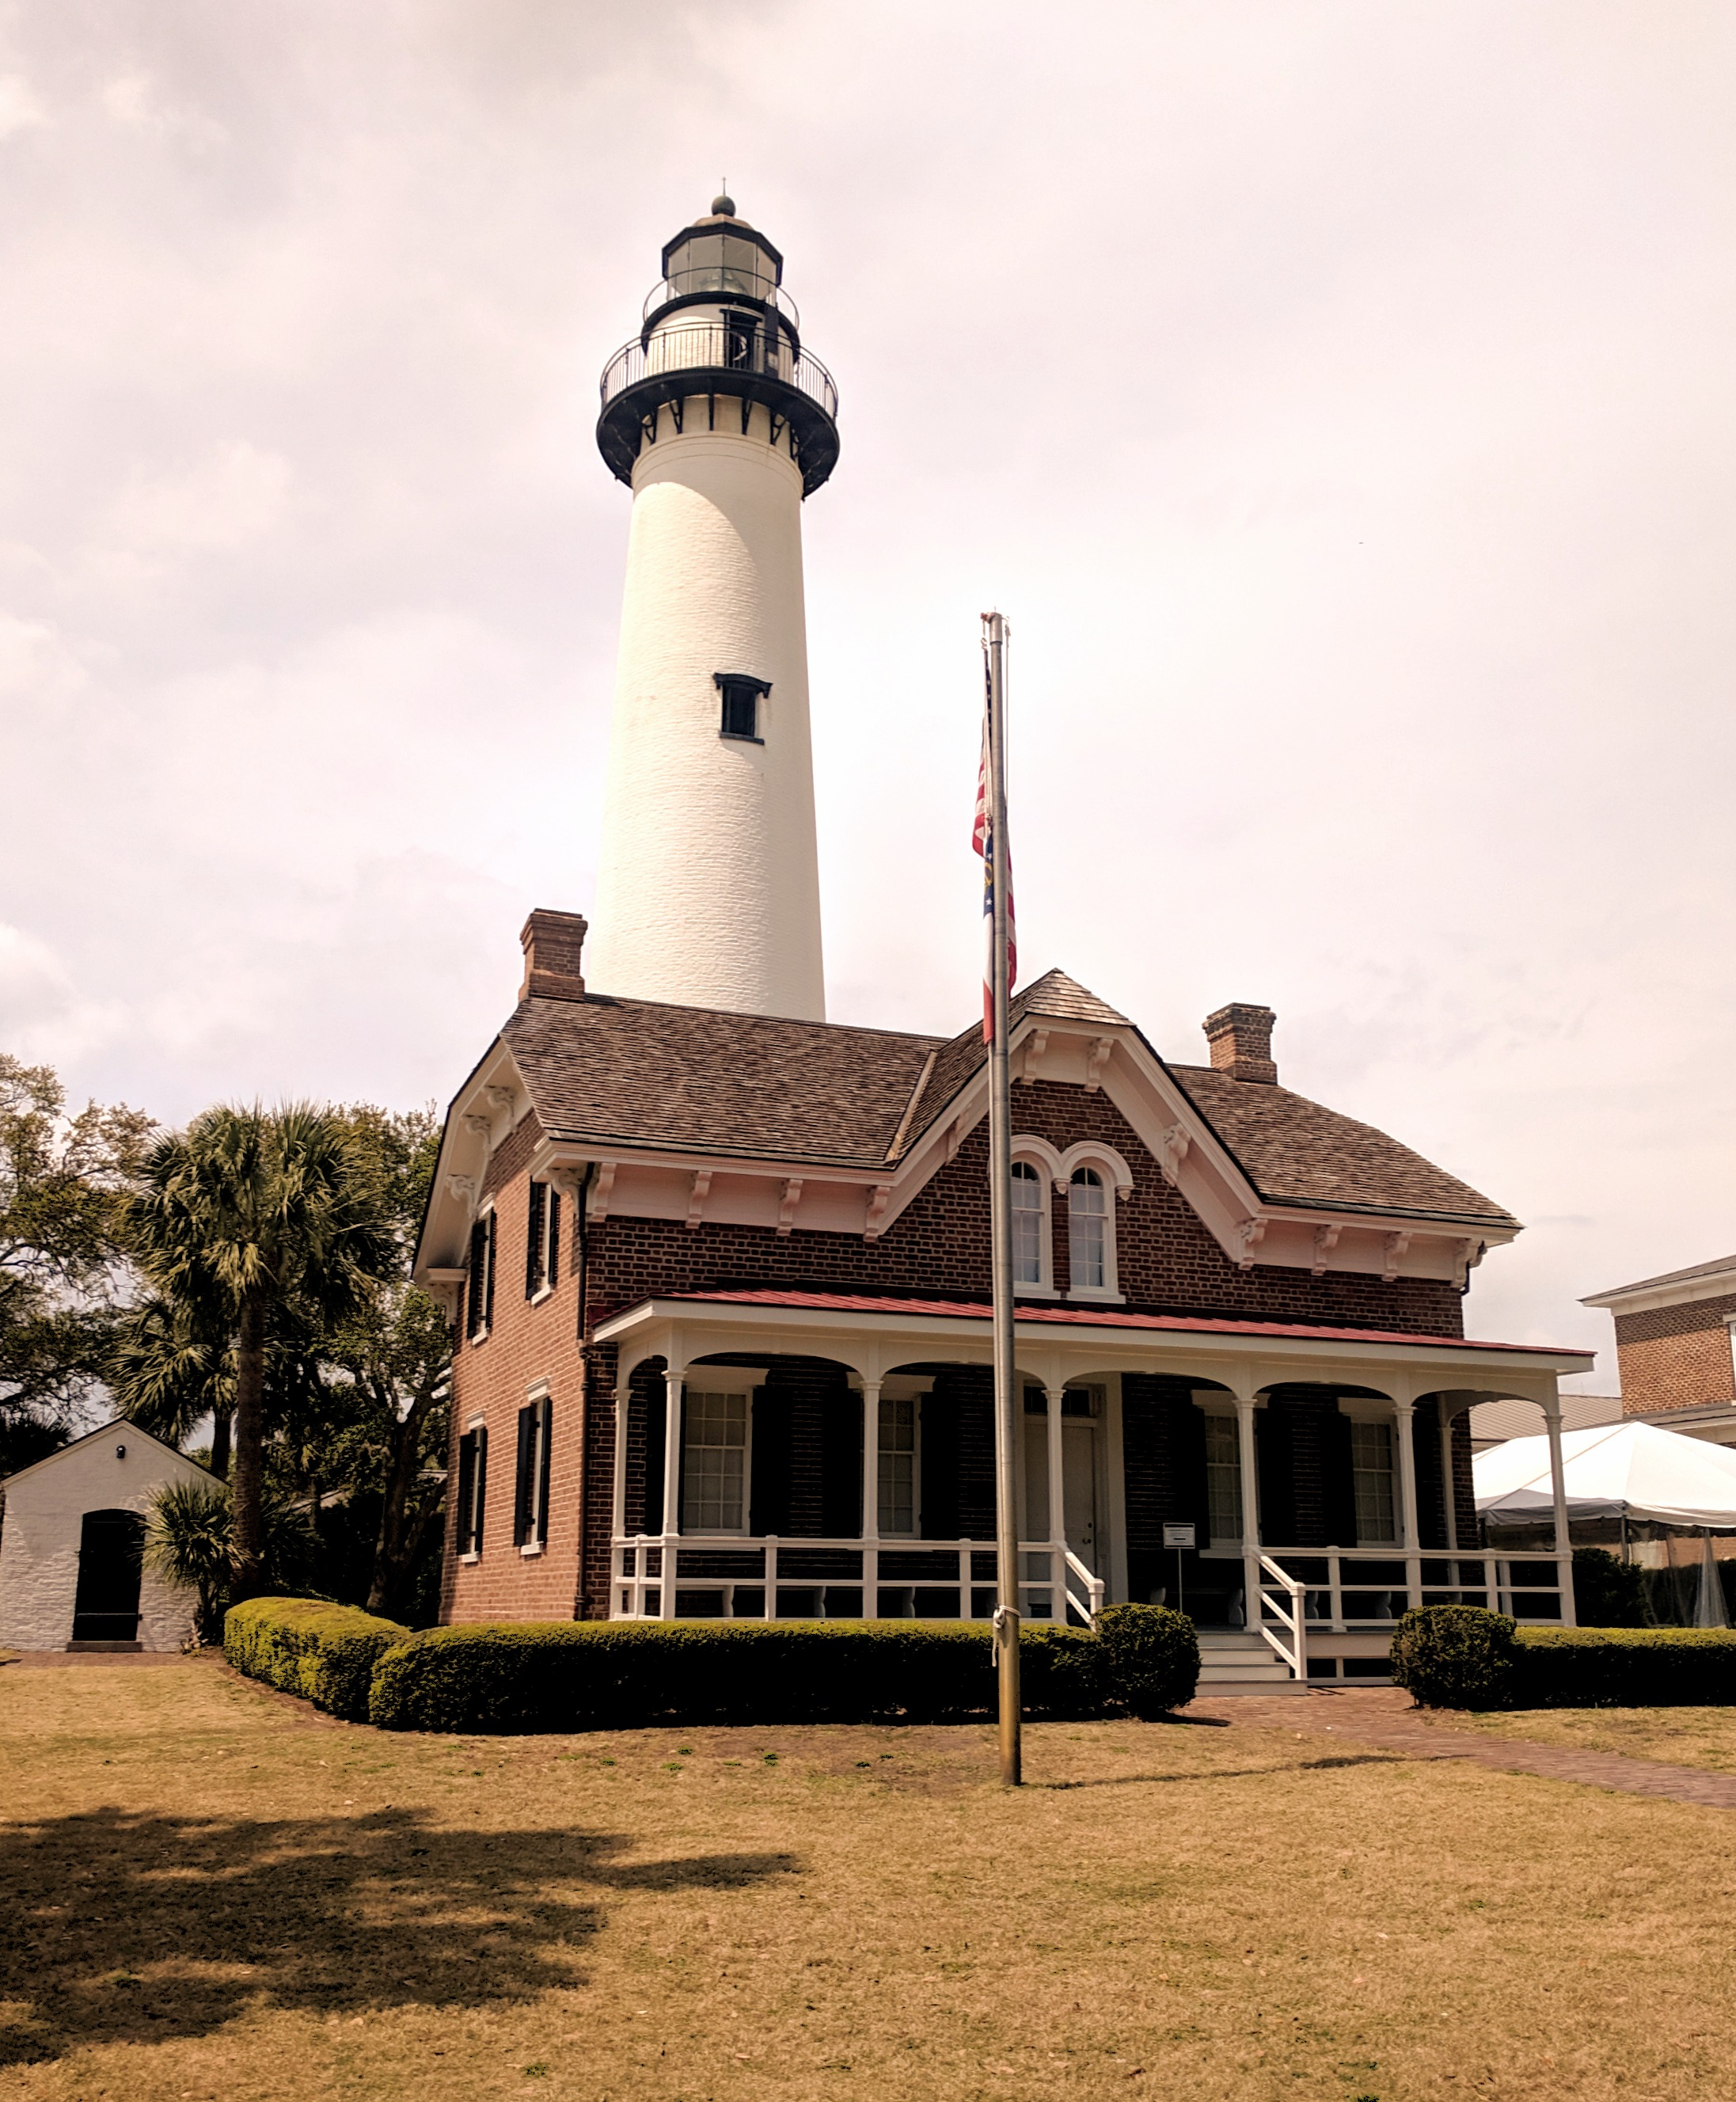 St. Simons Light